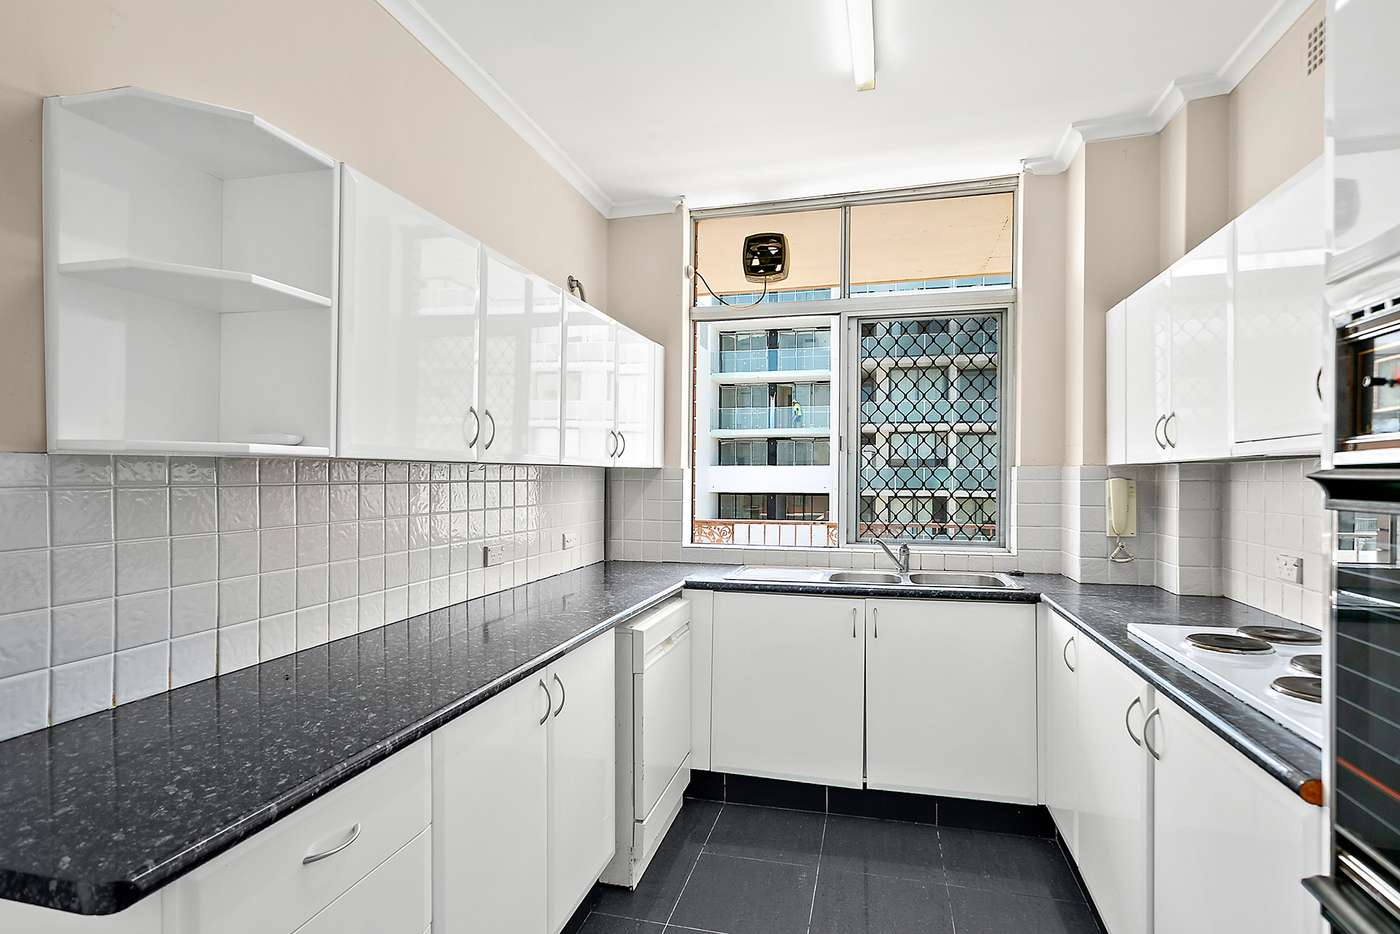 Main view of Homely apartment listing, 19/364 Bay Street, Brighton-le-sands NSW 2216